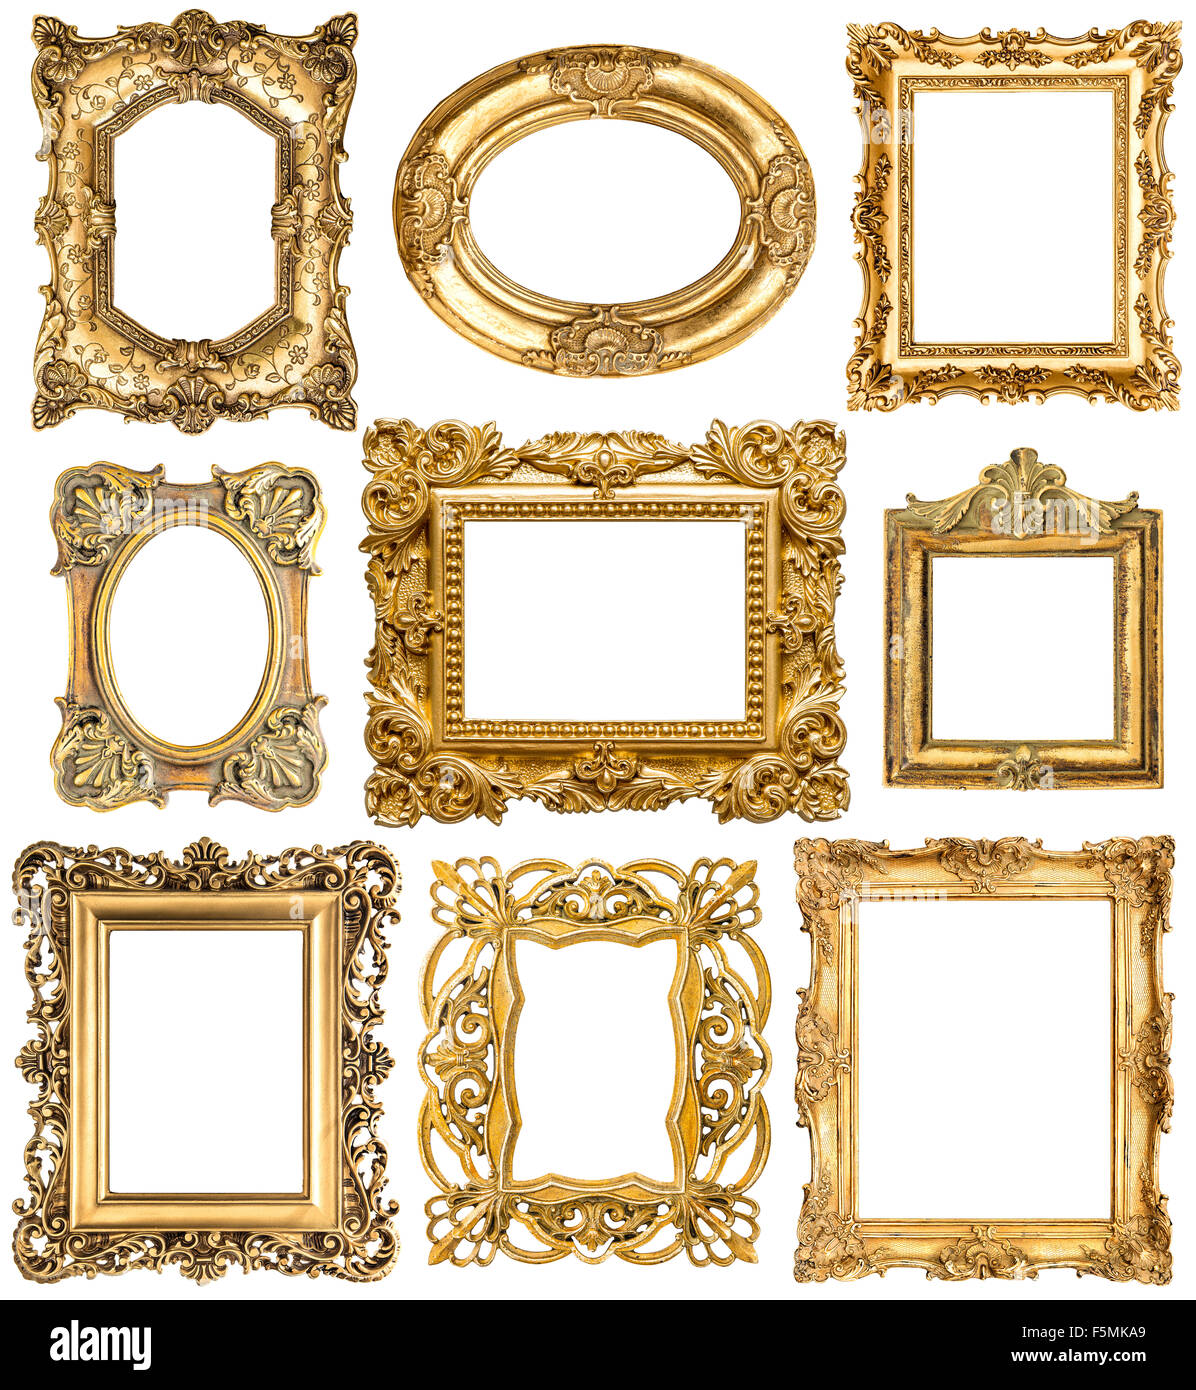 Golden frames isolated on white background. Baroque style vintage ...